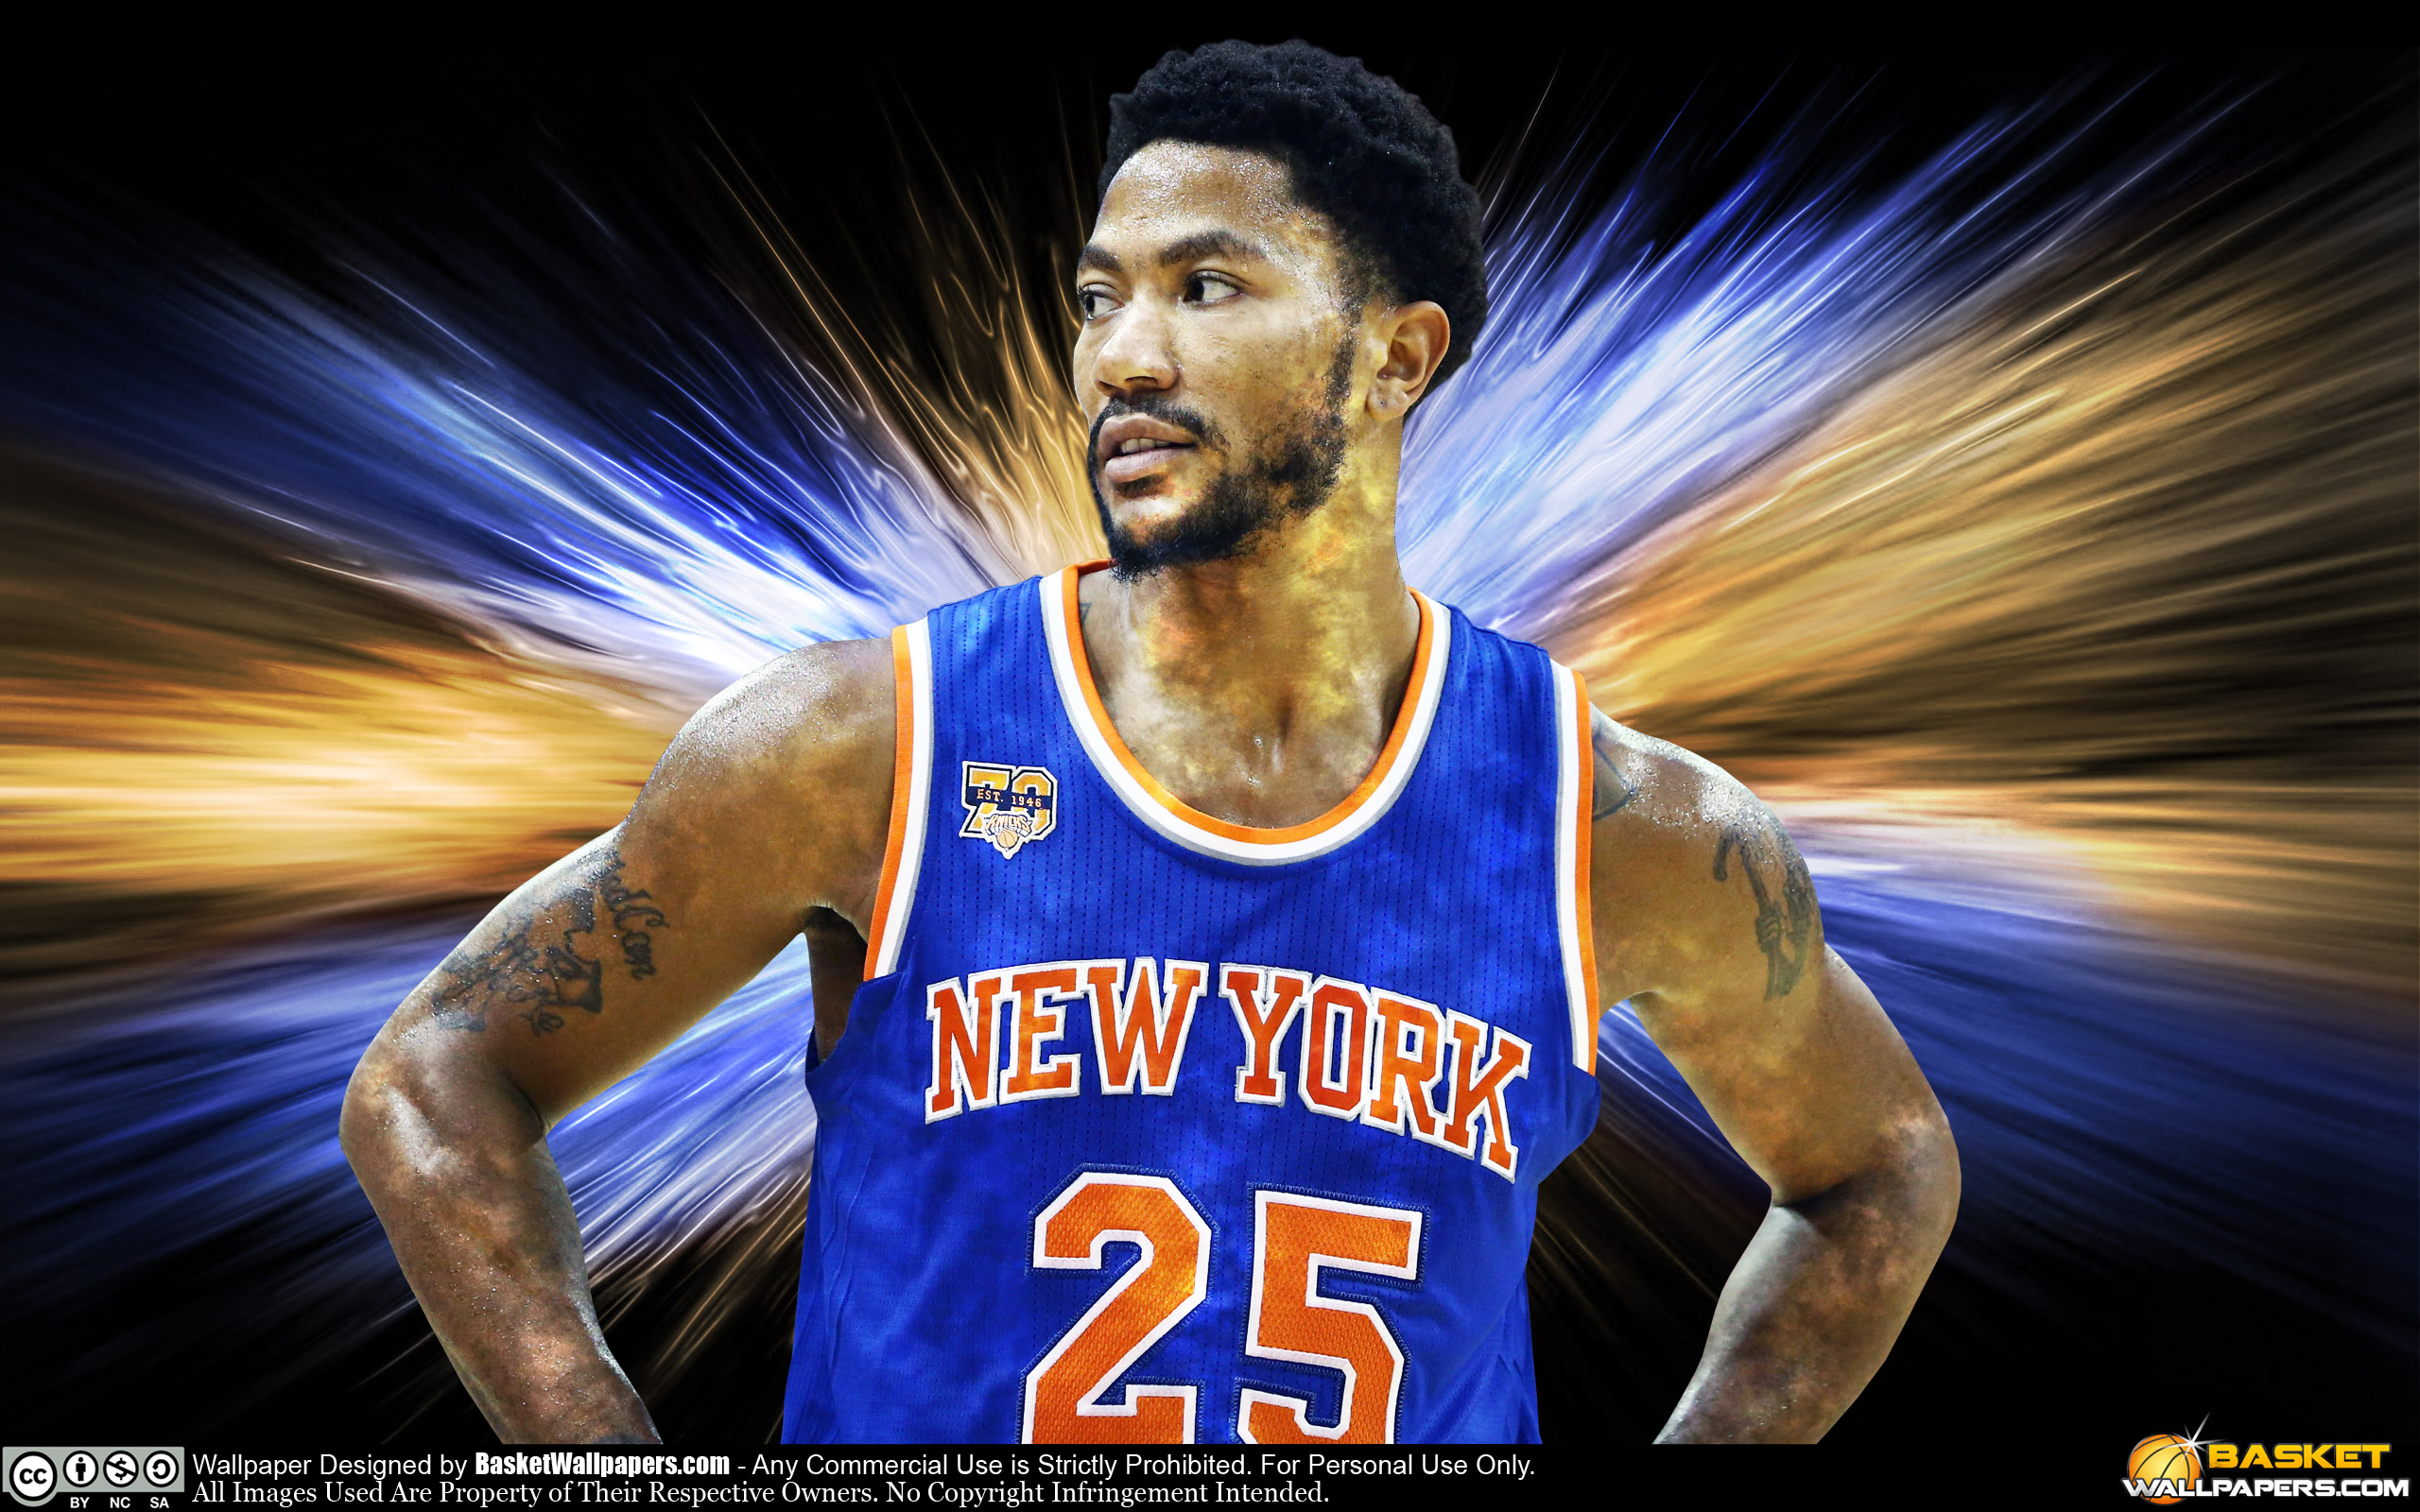 Derrick Rose New York Knicks 2016 Wallpaper | Basketball Wallpapers at ...